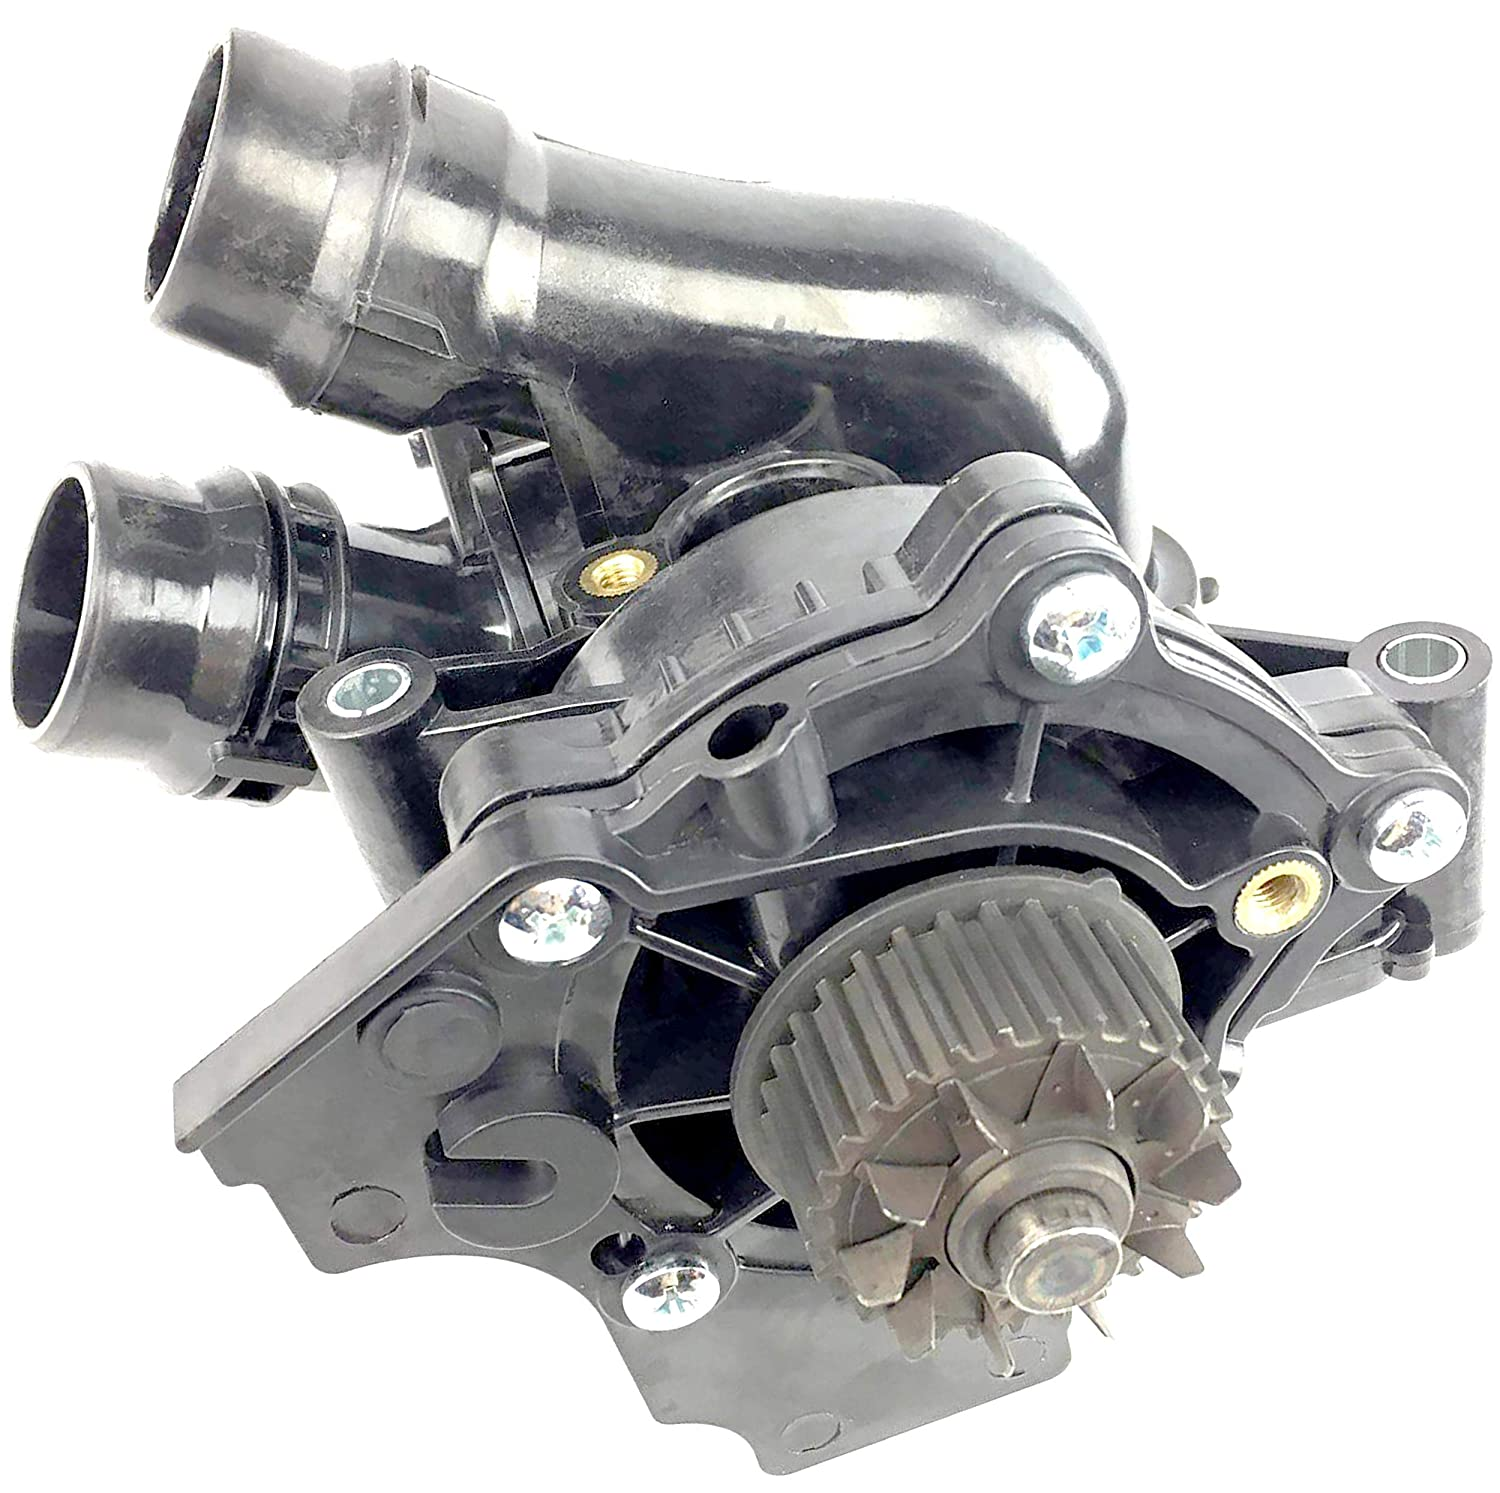 APDTY 141363 Thermostat /& Water Pump Housing Assembly Fits 2.0L Engine On Select VW or Audi Models Including Quattro See Description For Specific Models Replaces 06H 121 026 DD, 06H 121 026BA